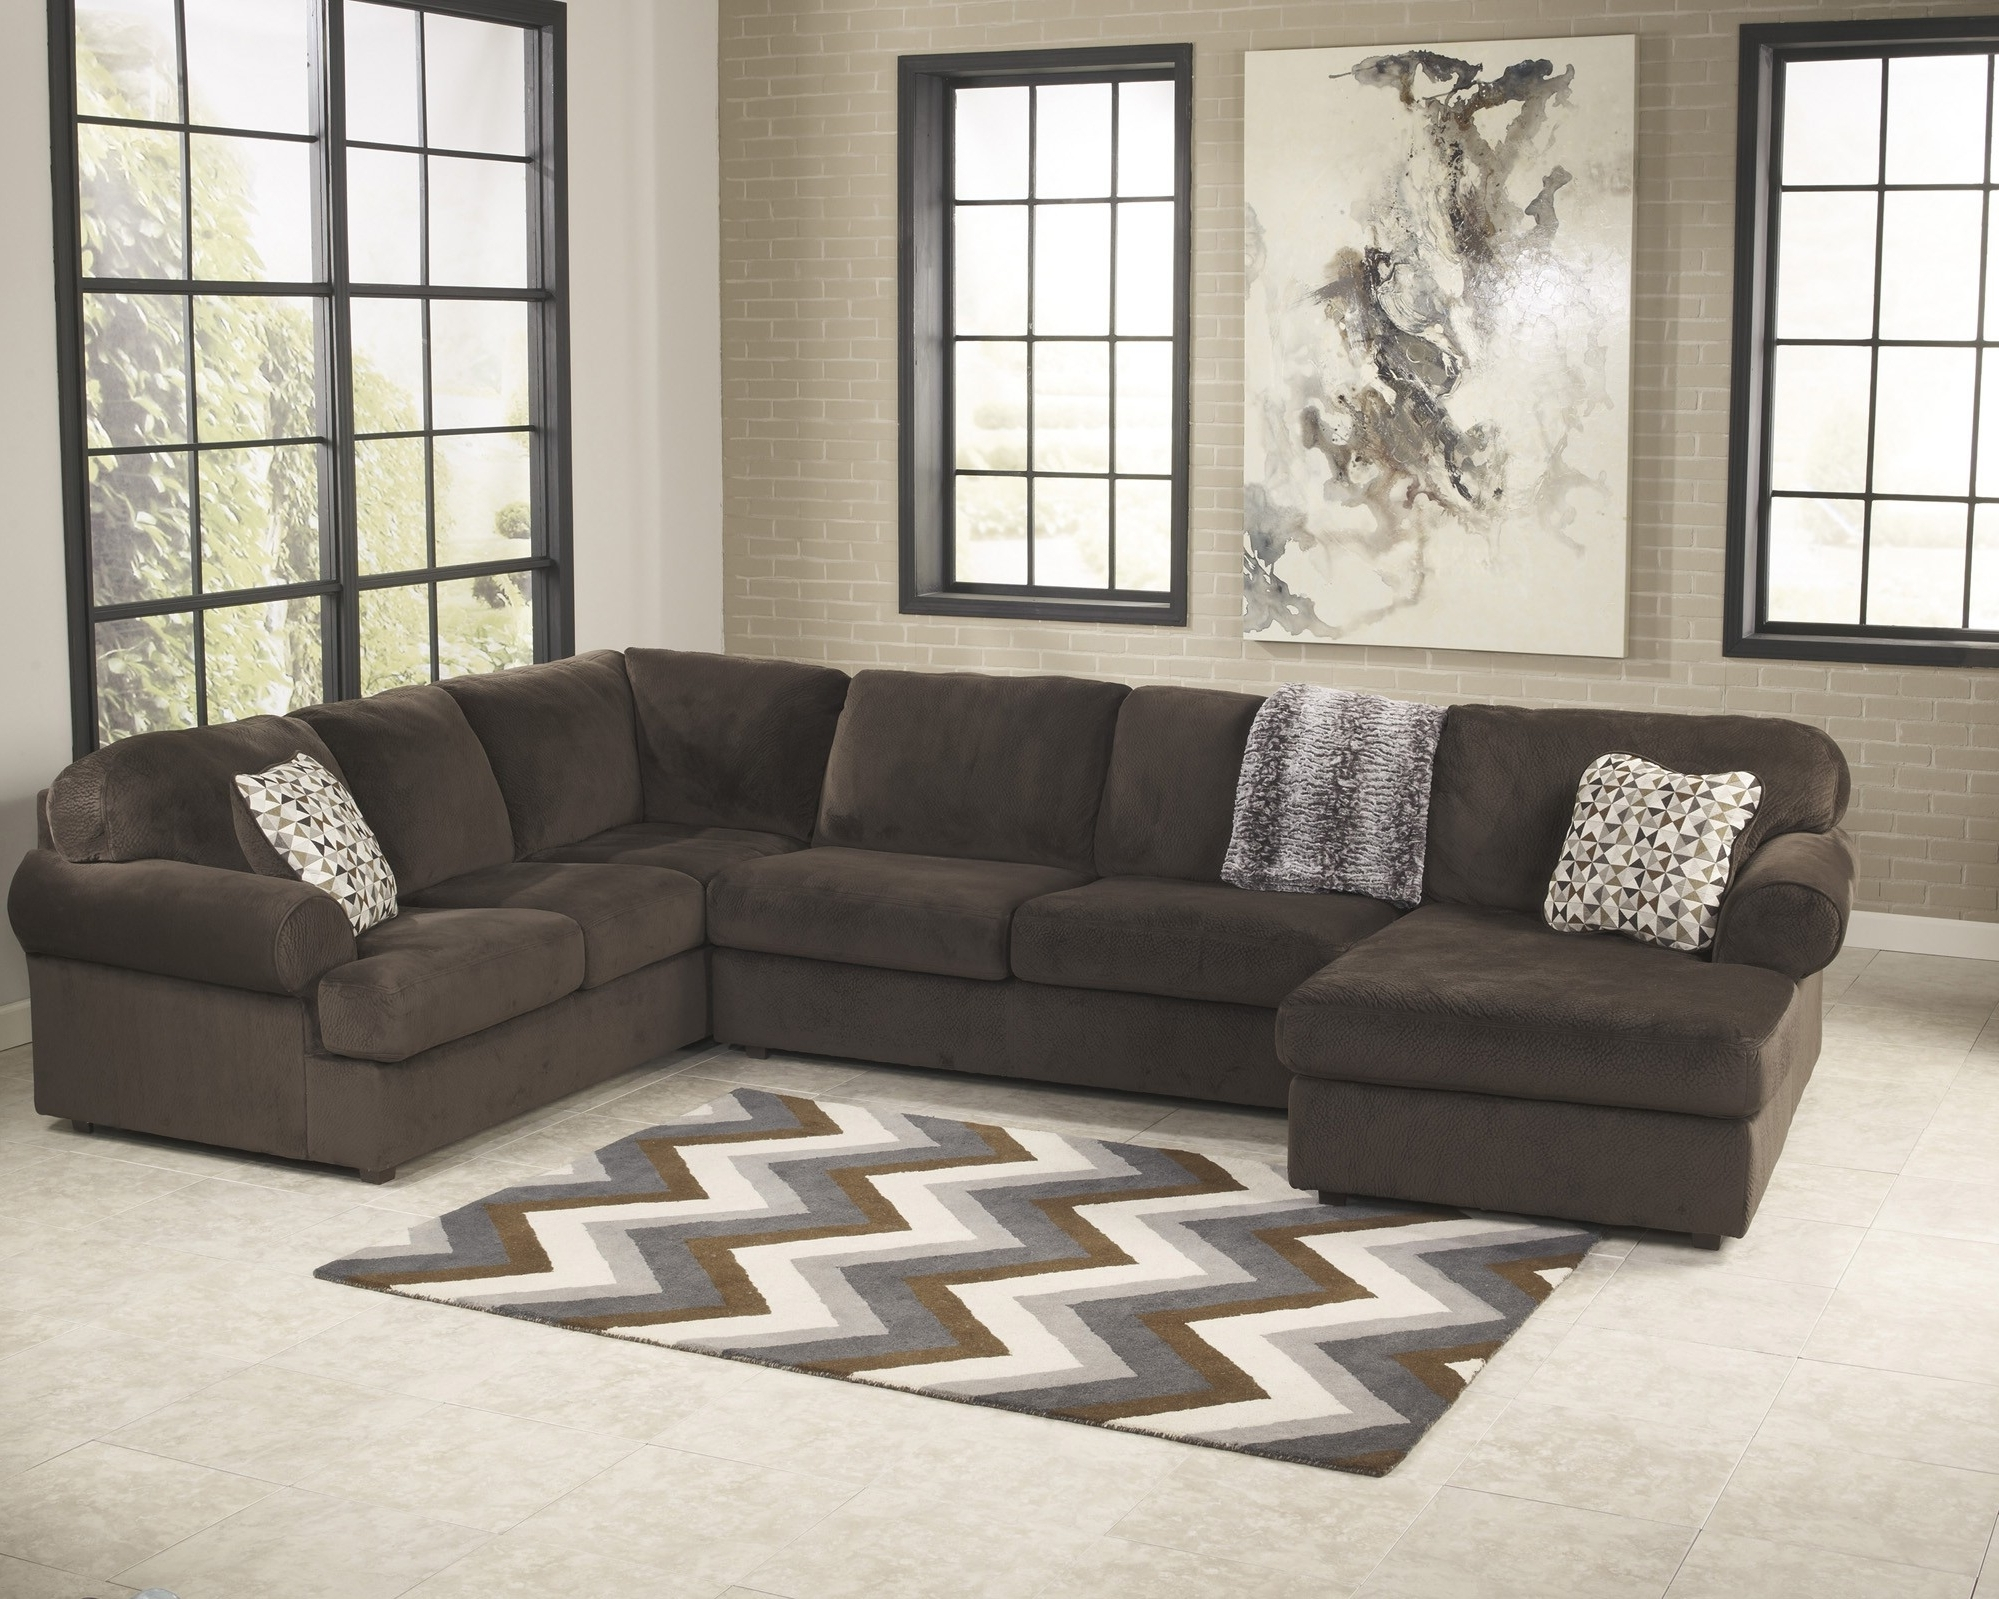 Greenville Sc Sectional Sofas With Regard To Well Liked Chairs : Jessa Place Chocolate Piece Sectional Sofa For Sofas Sale (View 12 of 20)